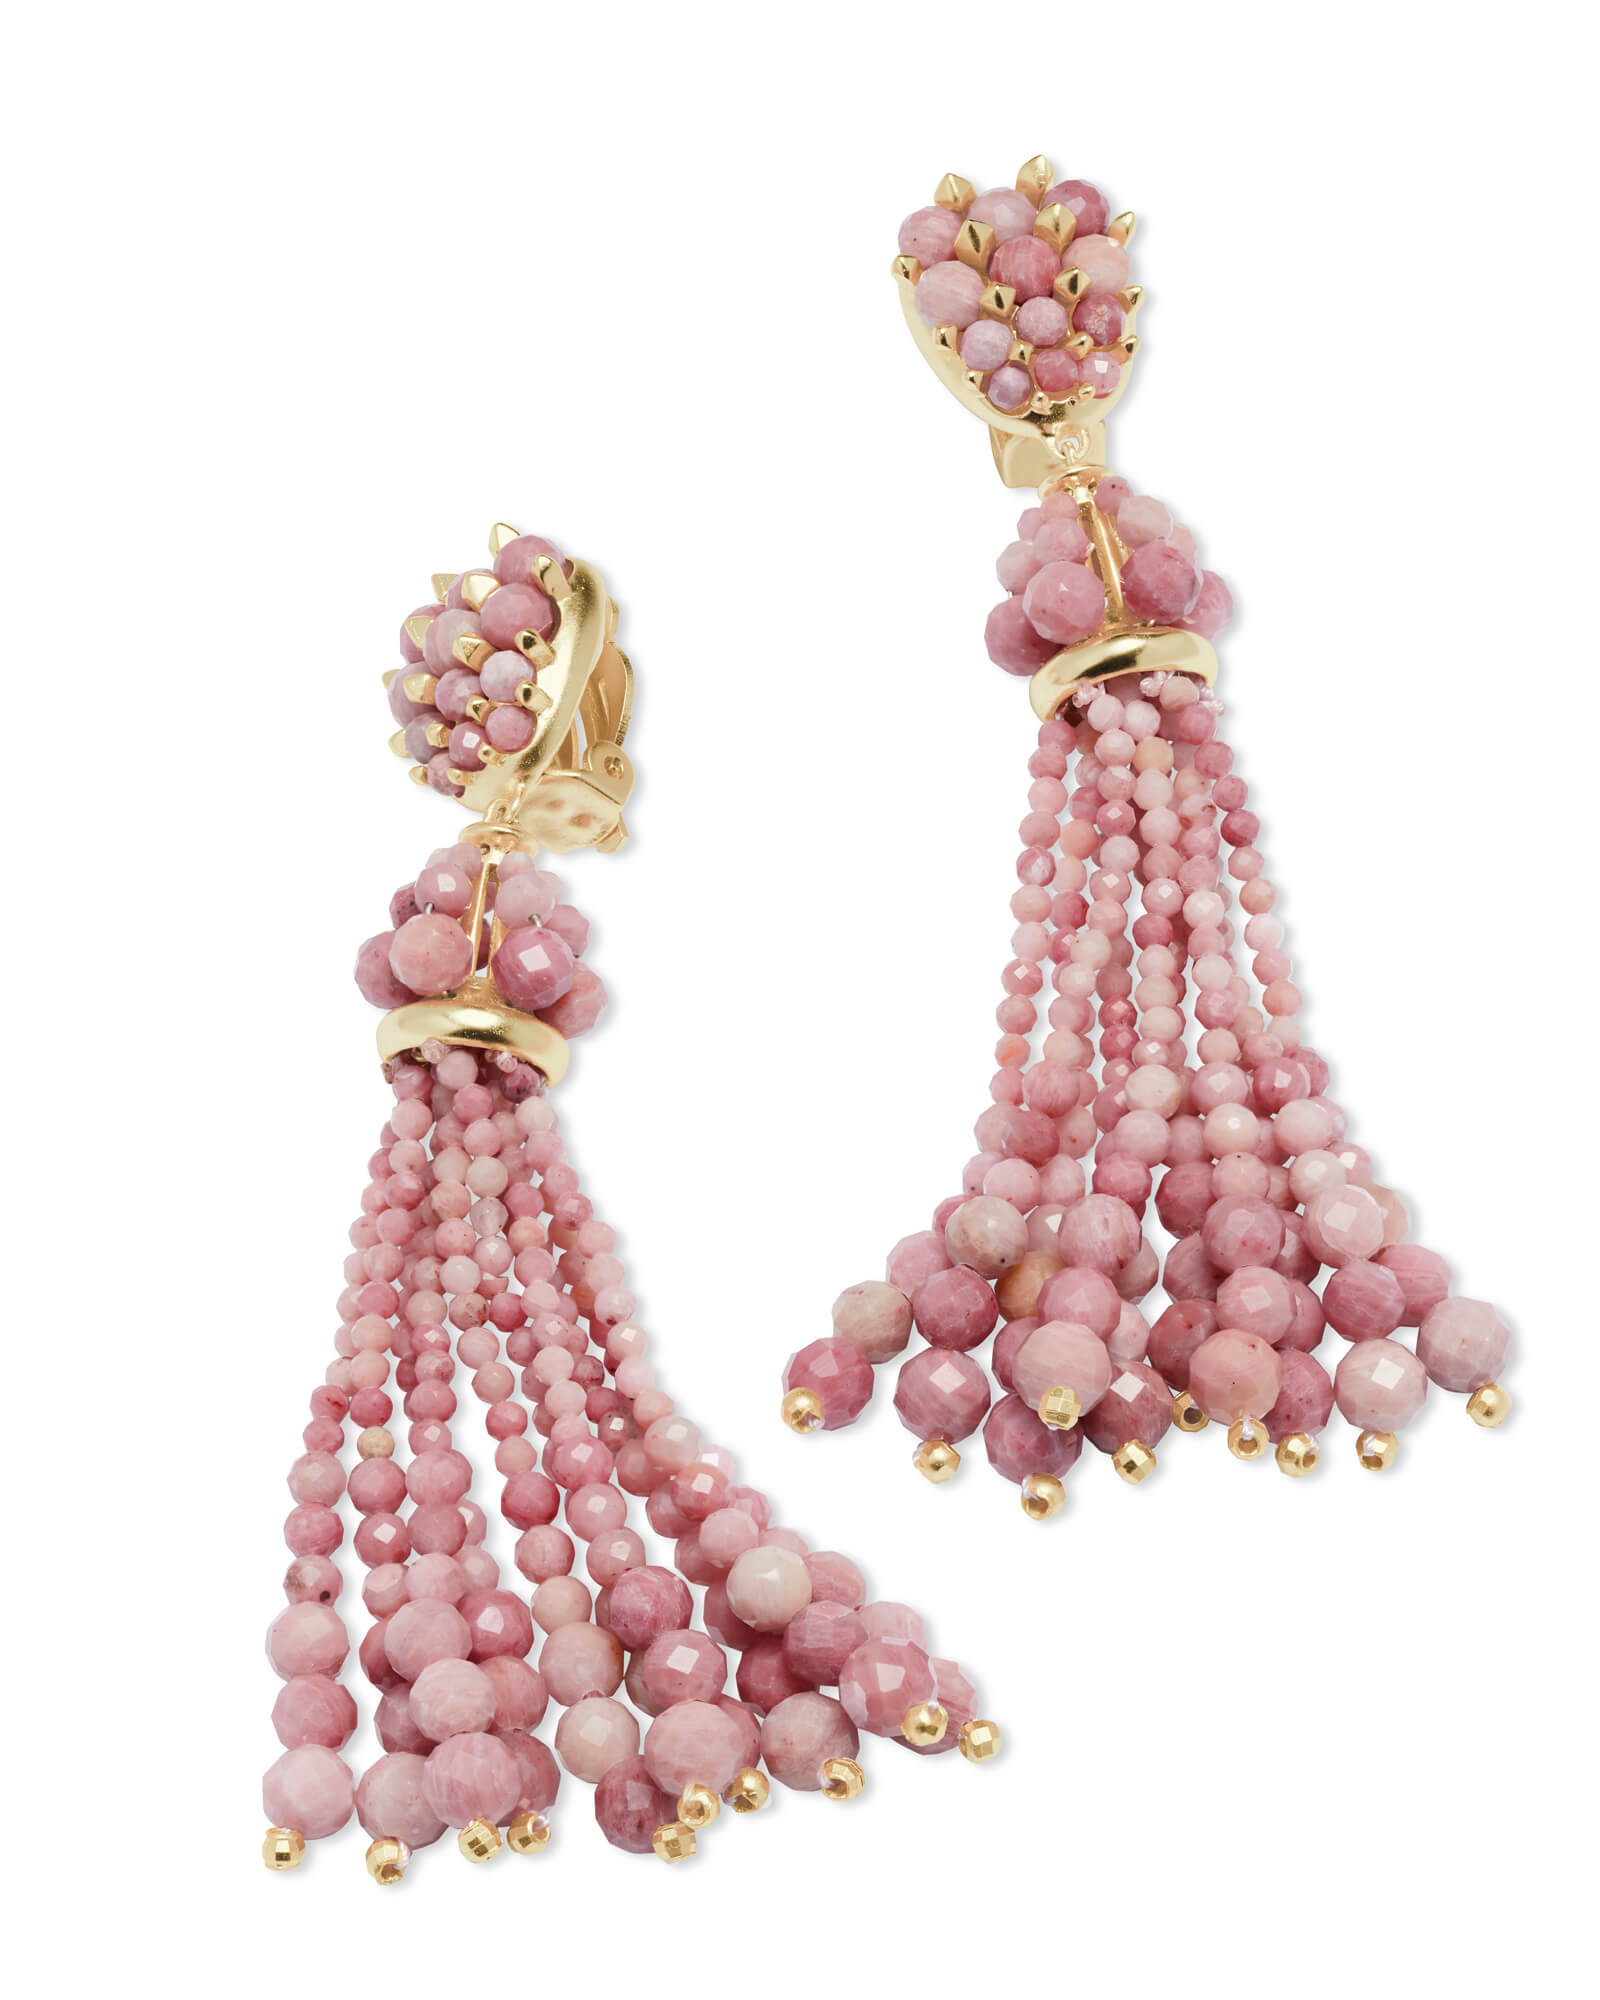 Cecily Gold Clip On Statement Earrings In Pink Rhodonite